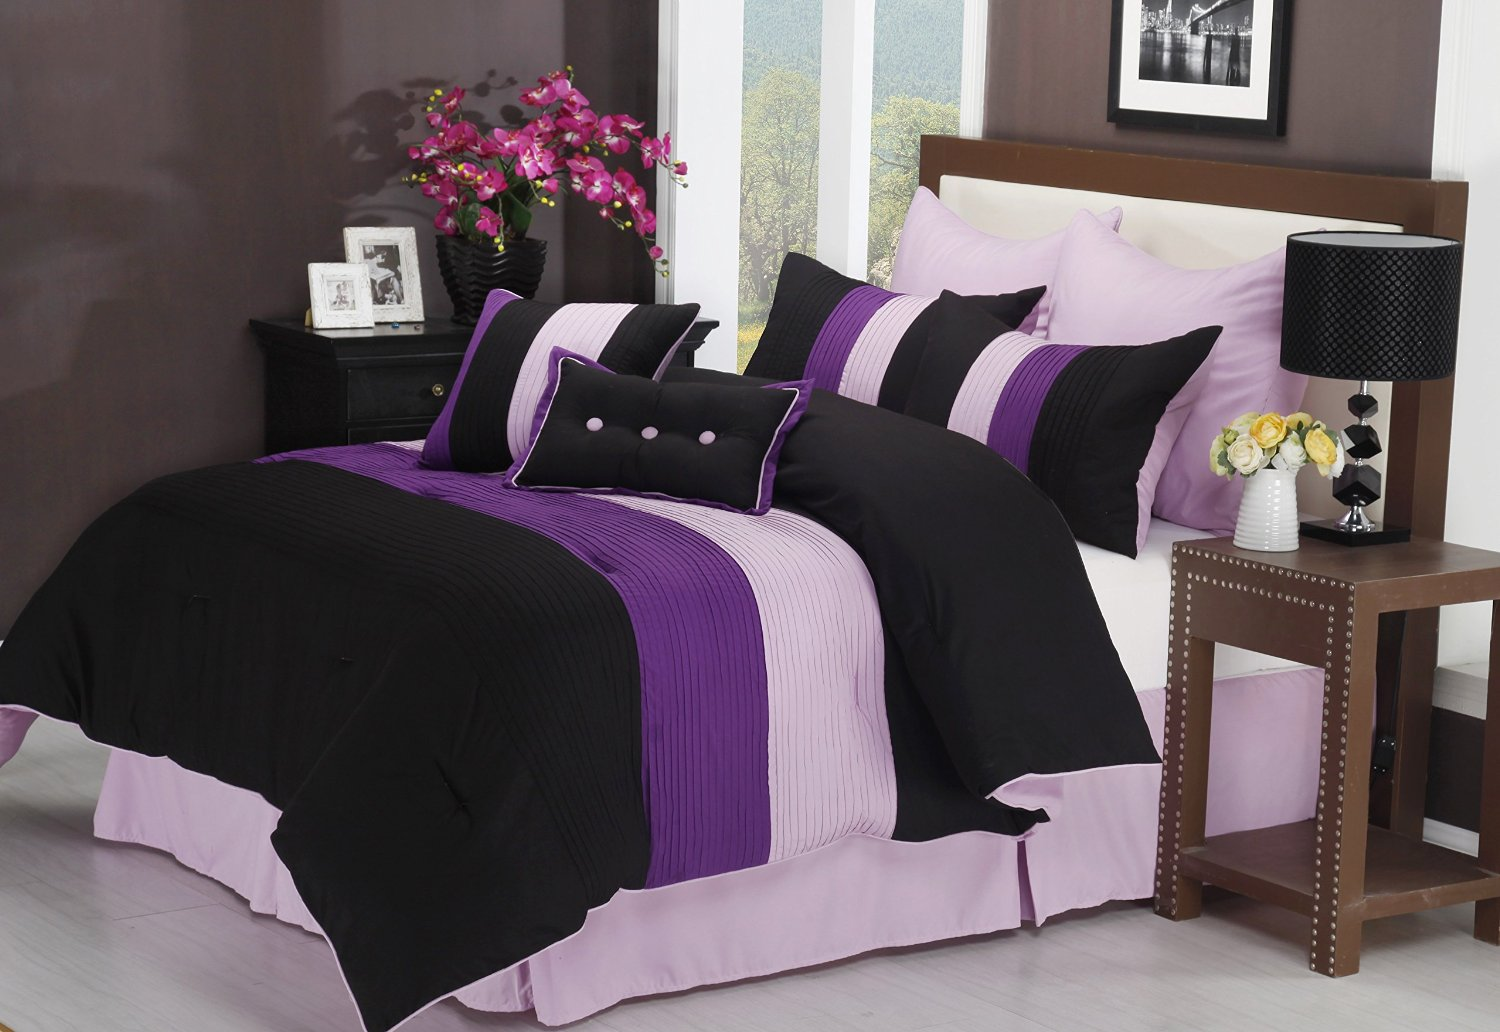 Total fab purple black and white bedding sets drama uplifted for Blue purple bedroom ideas